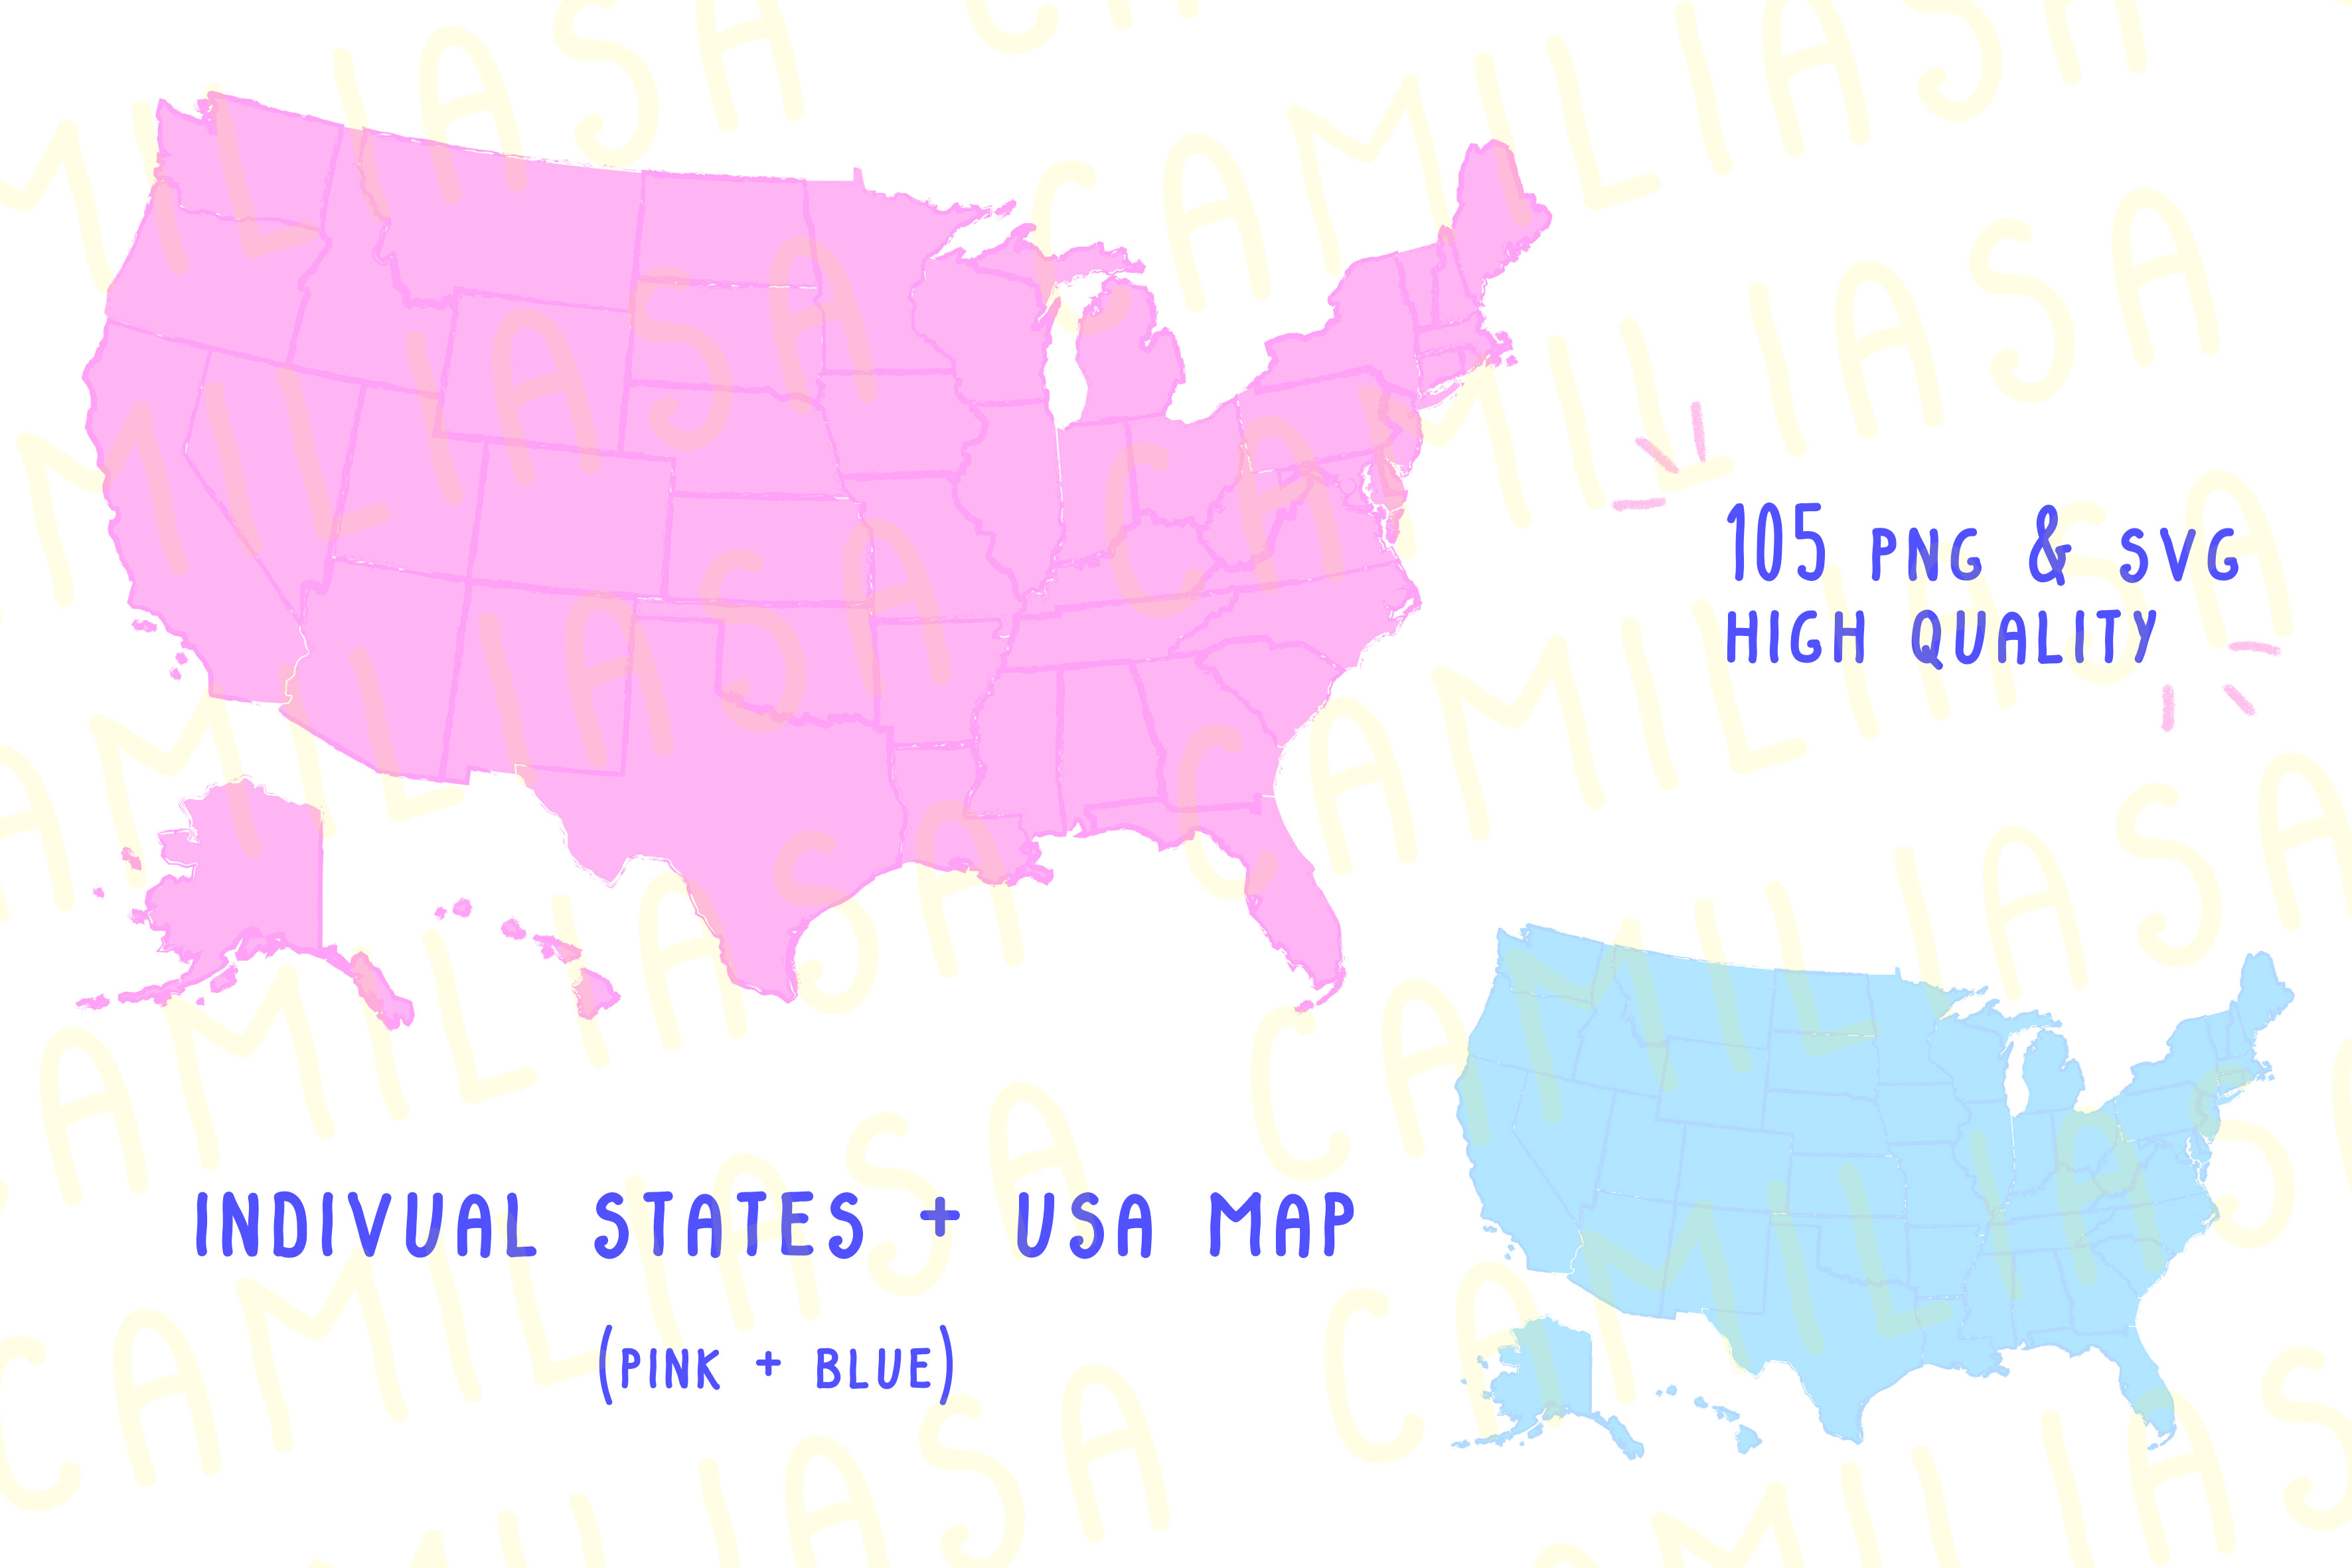 USA Map States Graphic by Inkclouddesign - Creative Fabrica